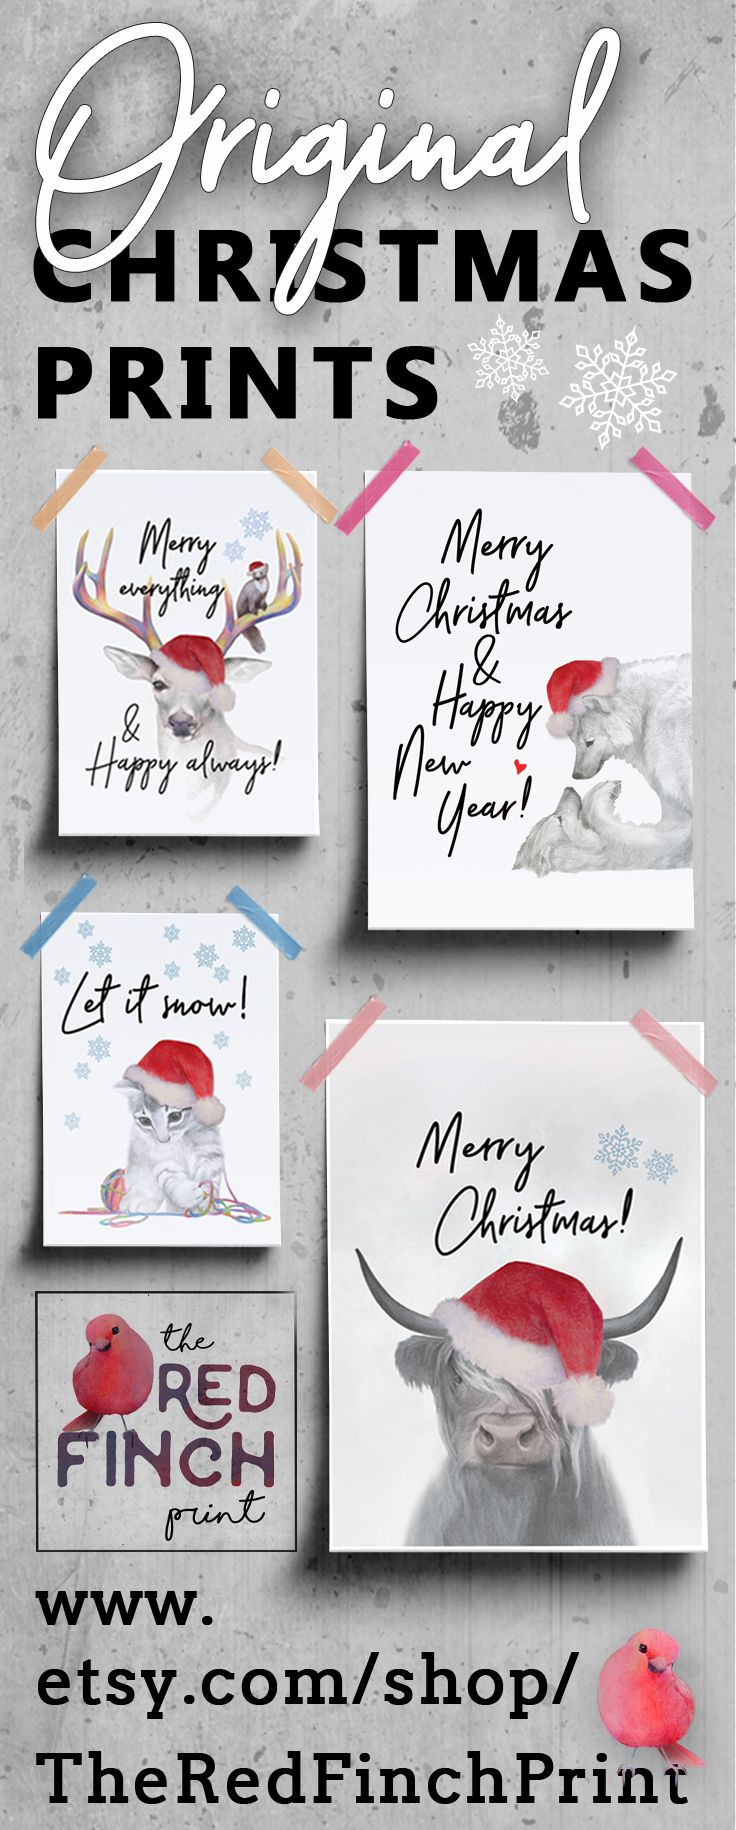 Update your home for the Holidays and make some great gifts! Check out the collection of these modern Christmas prints.